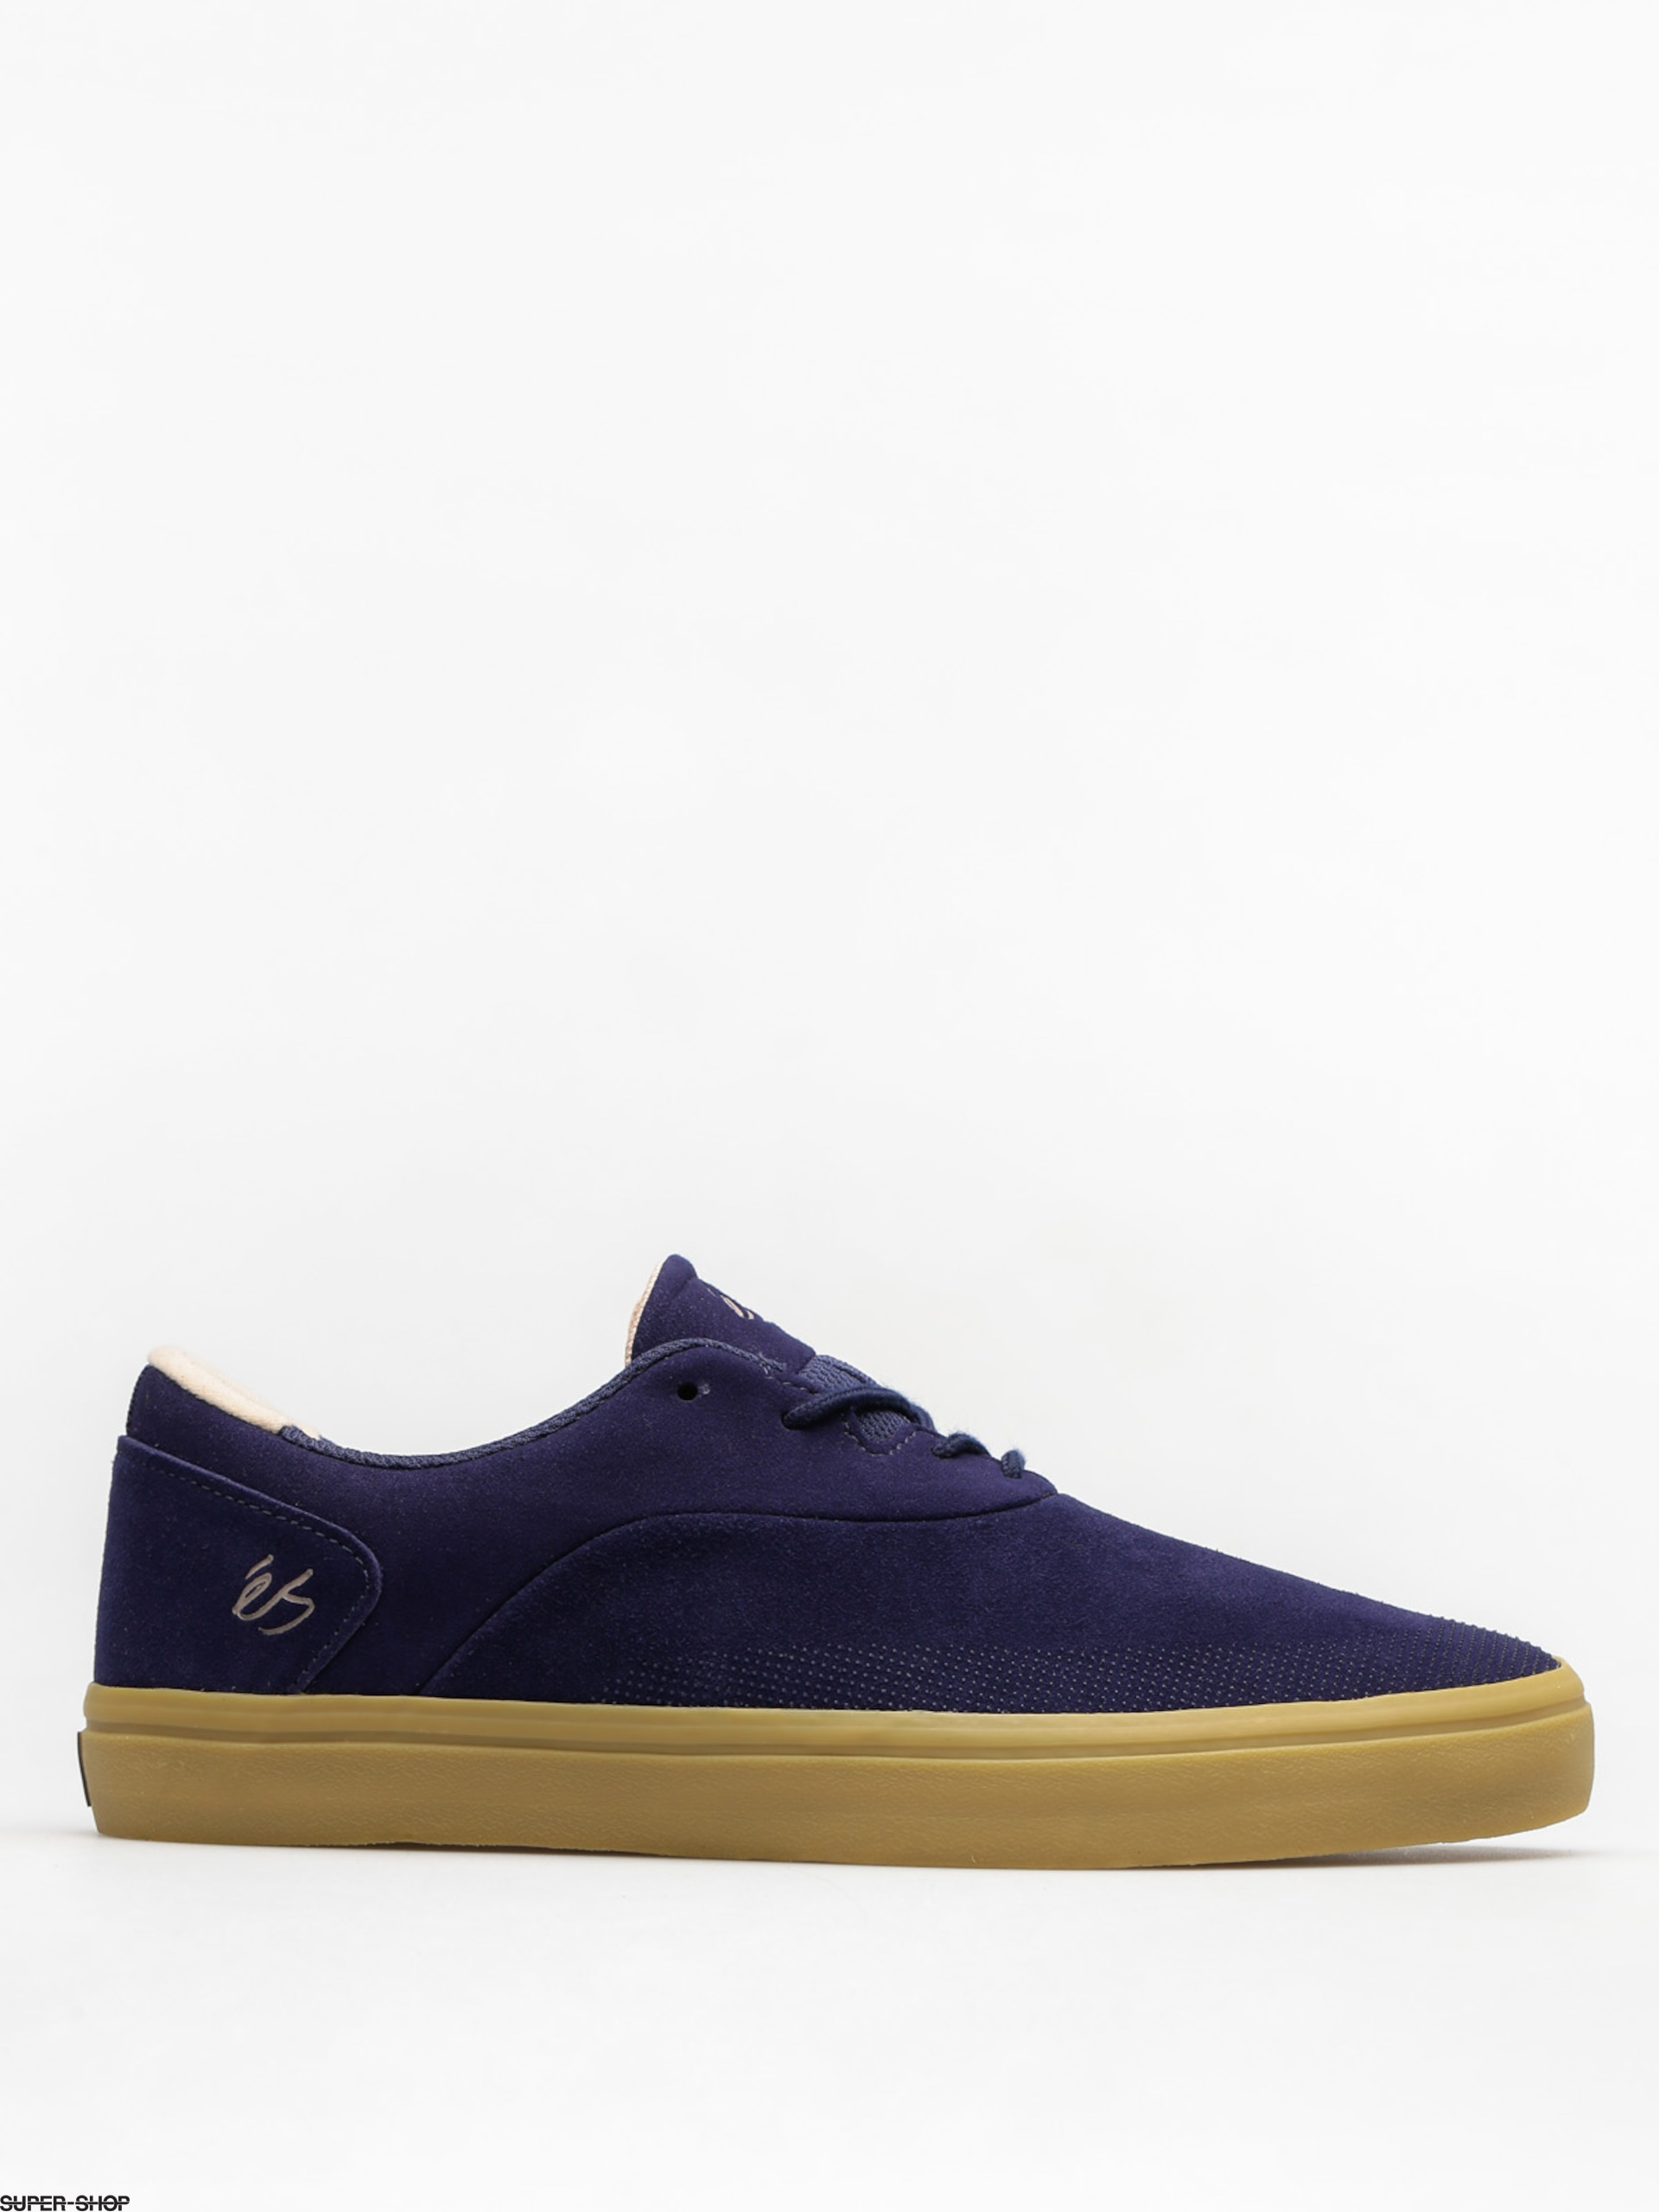 Es Shoes Arc (navy/gum)